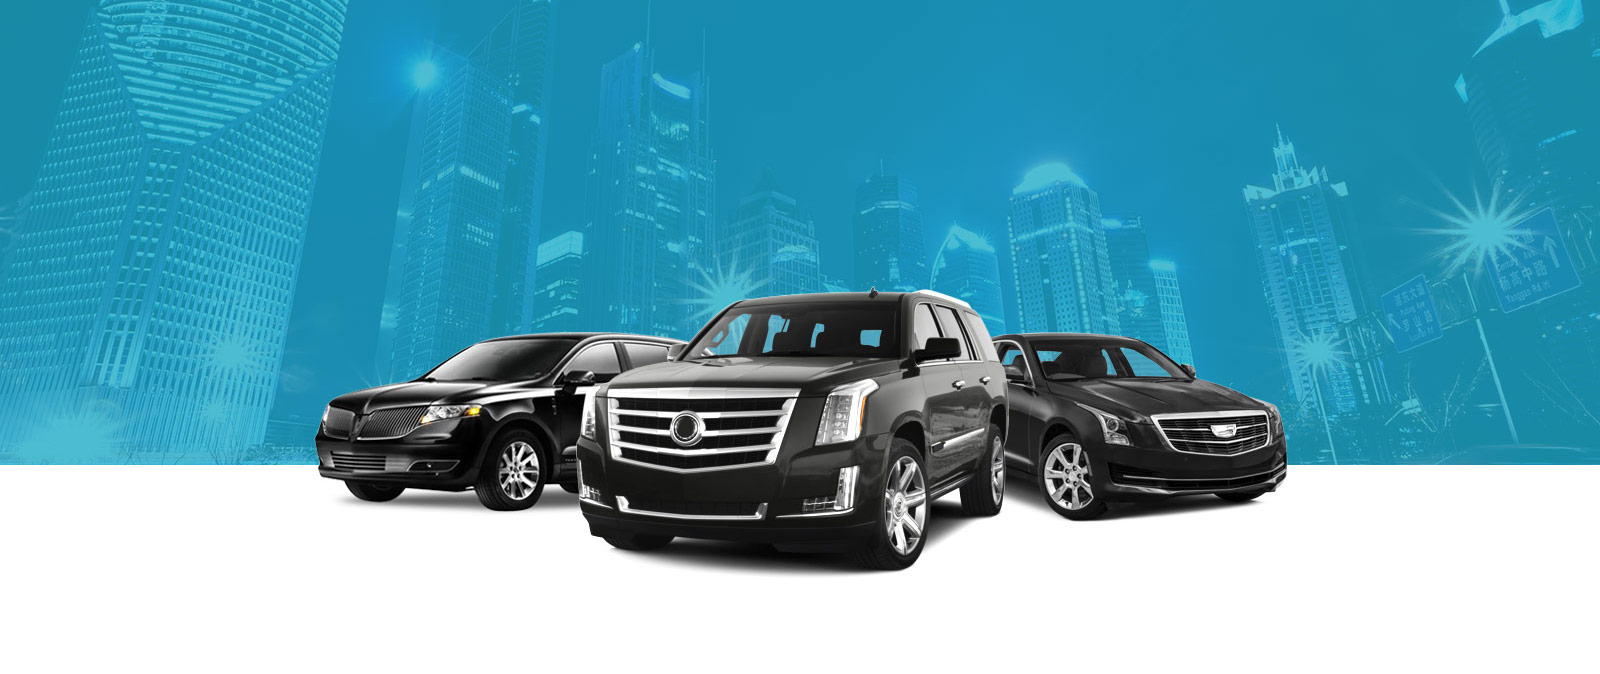 Bwi Airport Shuttle Limo Amp Sedan Service Airport